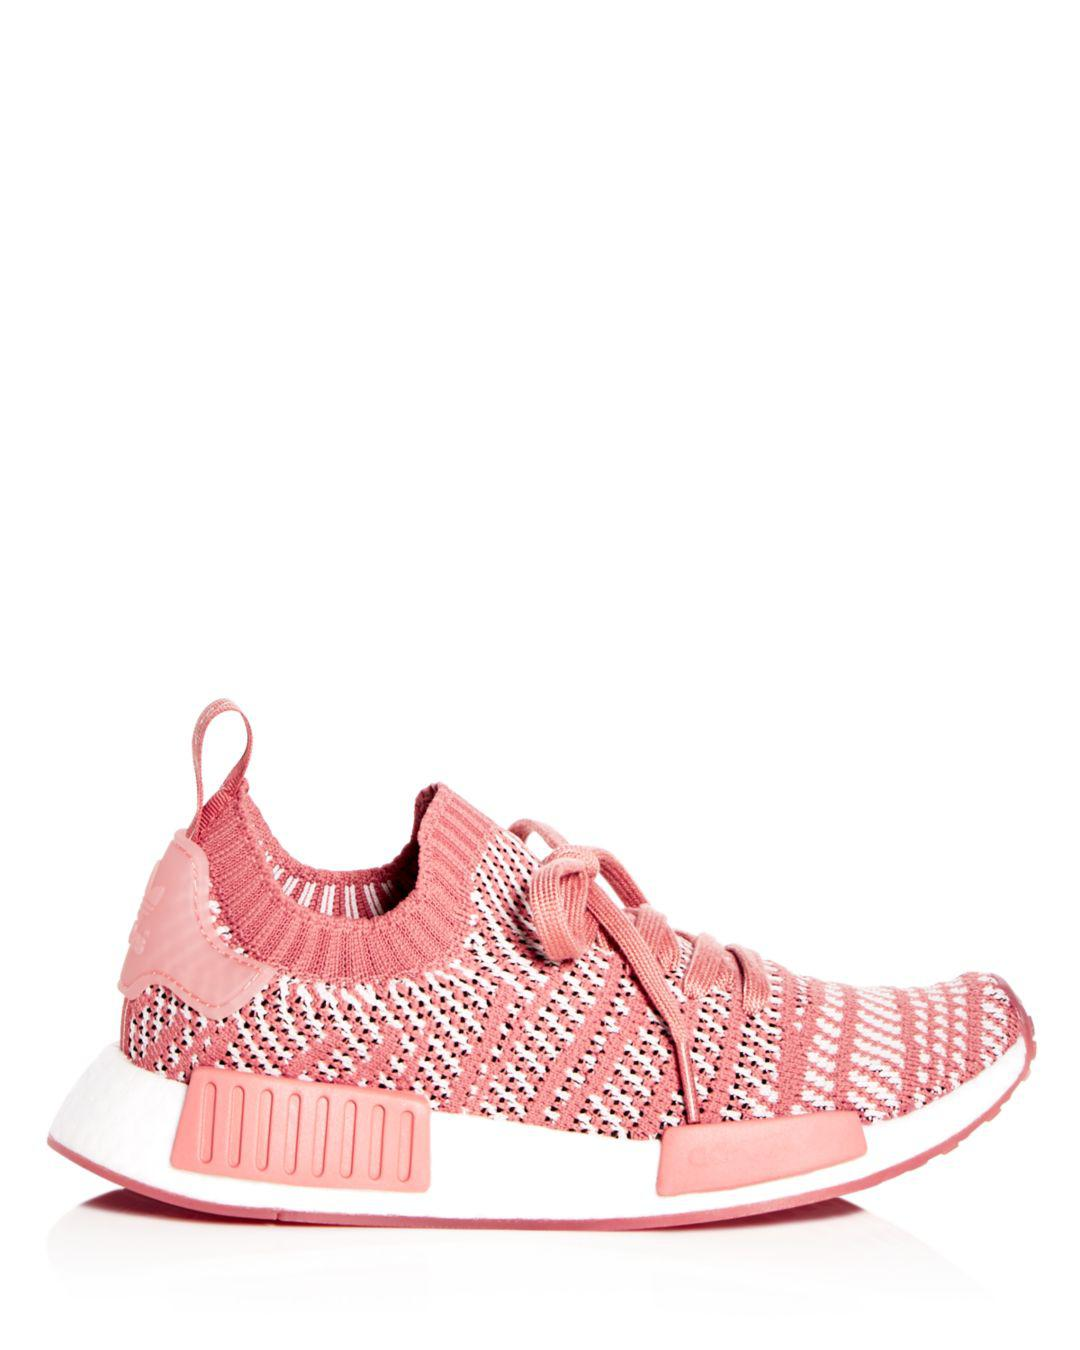 f9a0ebab8 Lyst - adidas Women s Nmd R1 Knit Lace Up Sneakers in Pink